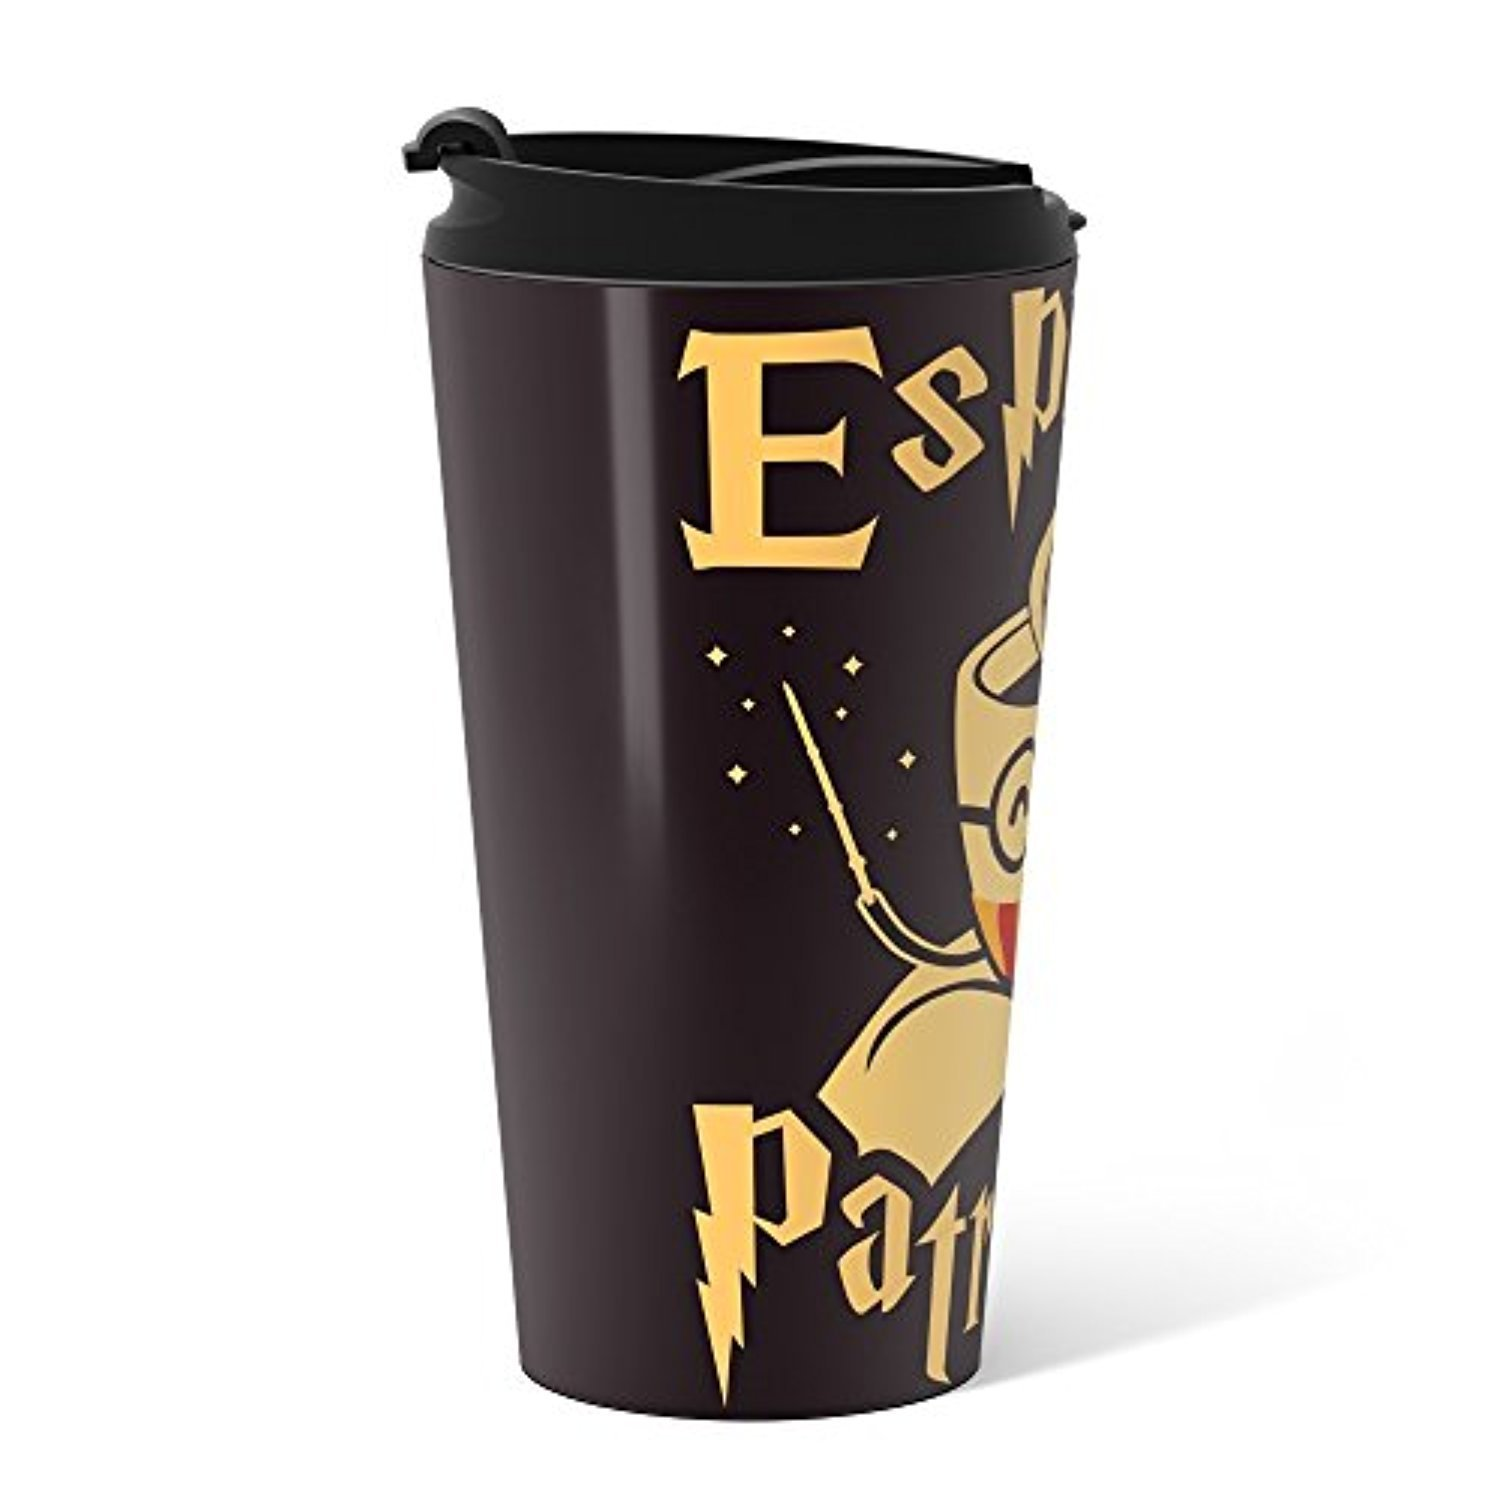 ◎送料込み◎ Society6 Espresso Patronum Metal Travel Mug 15